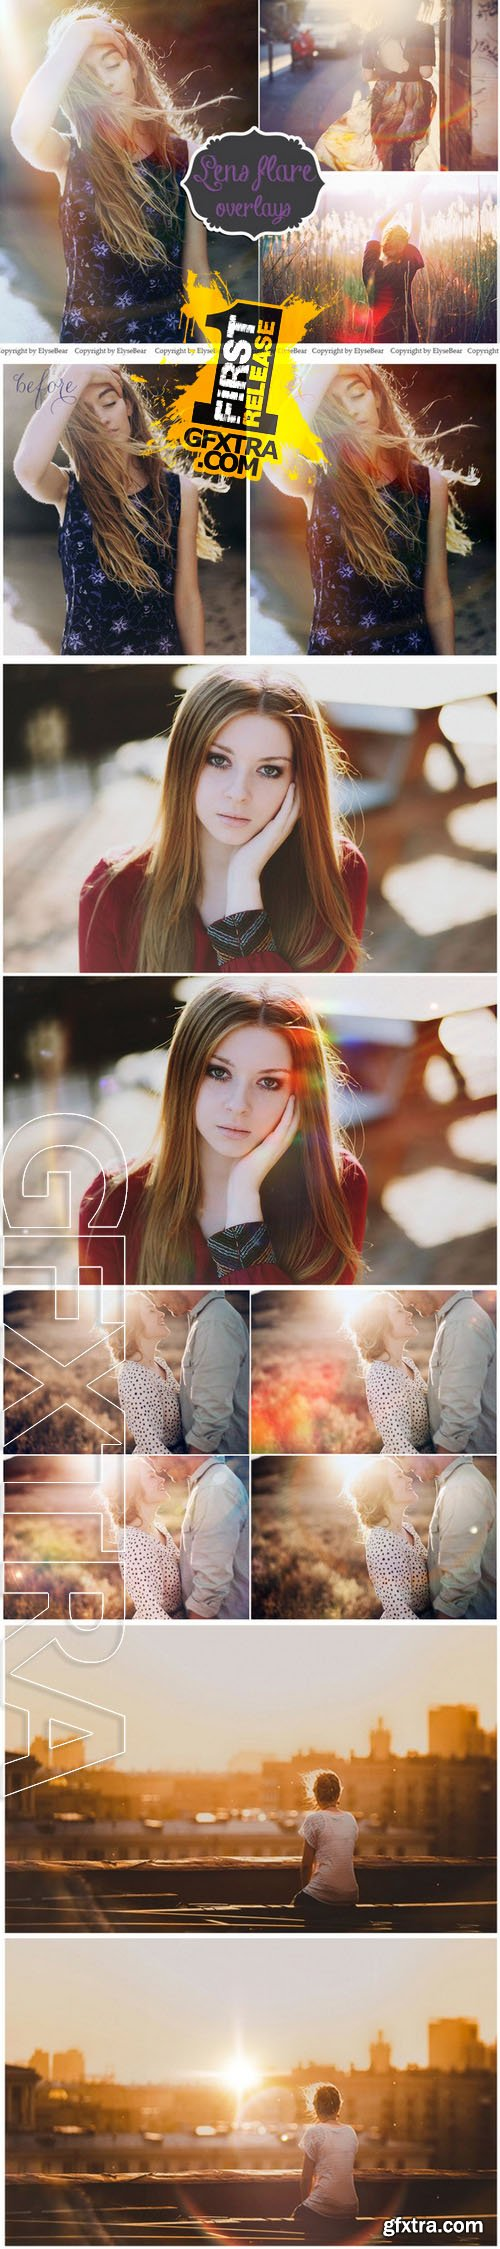 30 Lens Flare Overlays JPEG and PNG - CM 153609